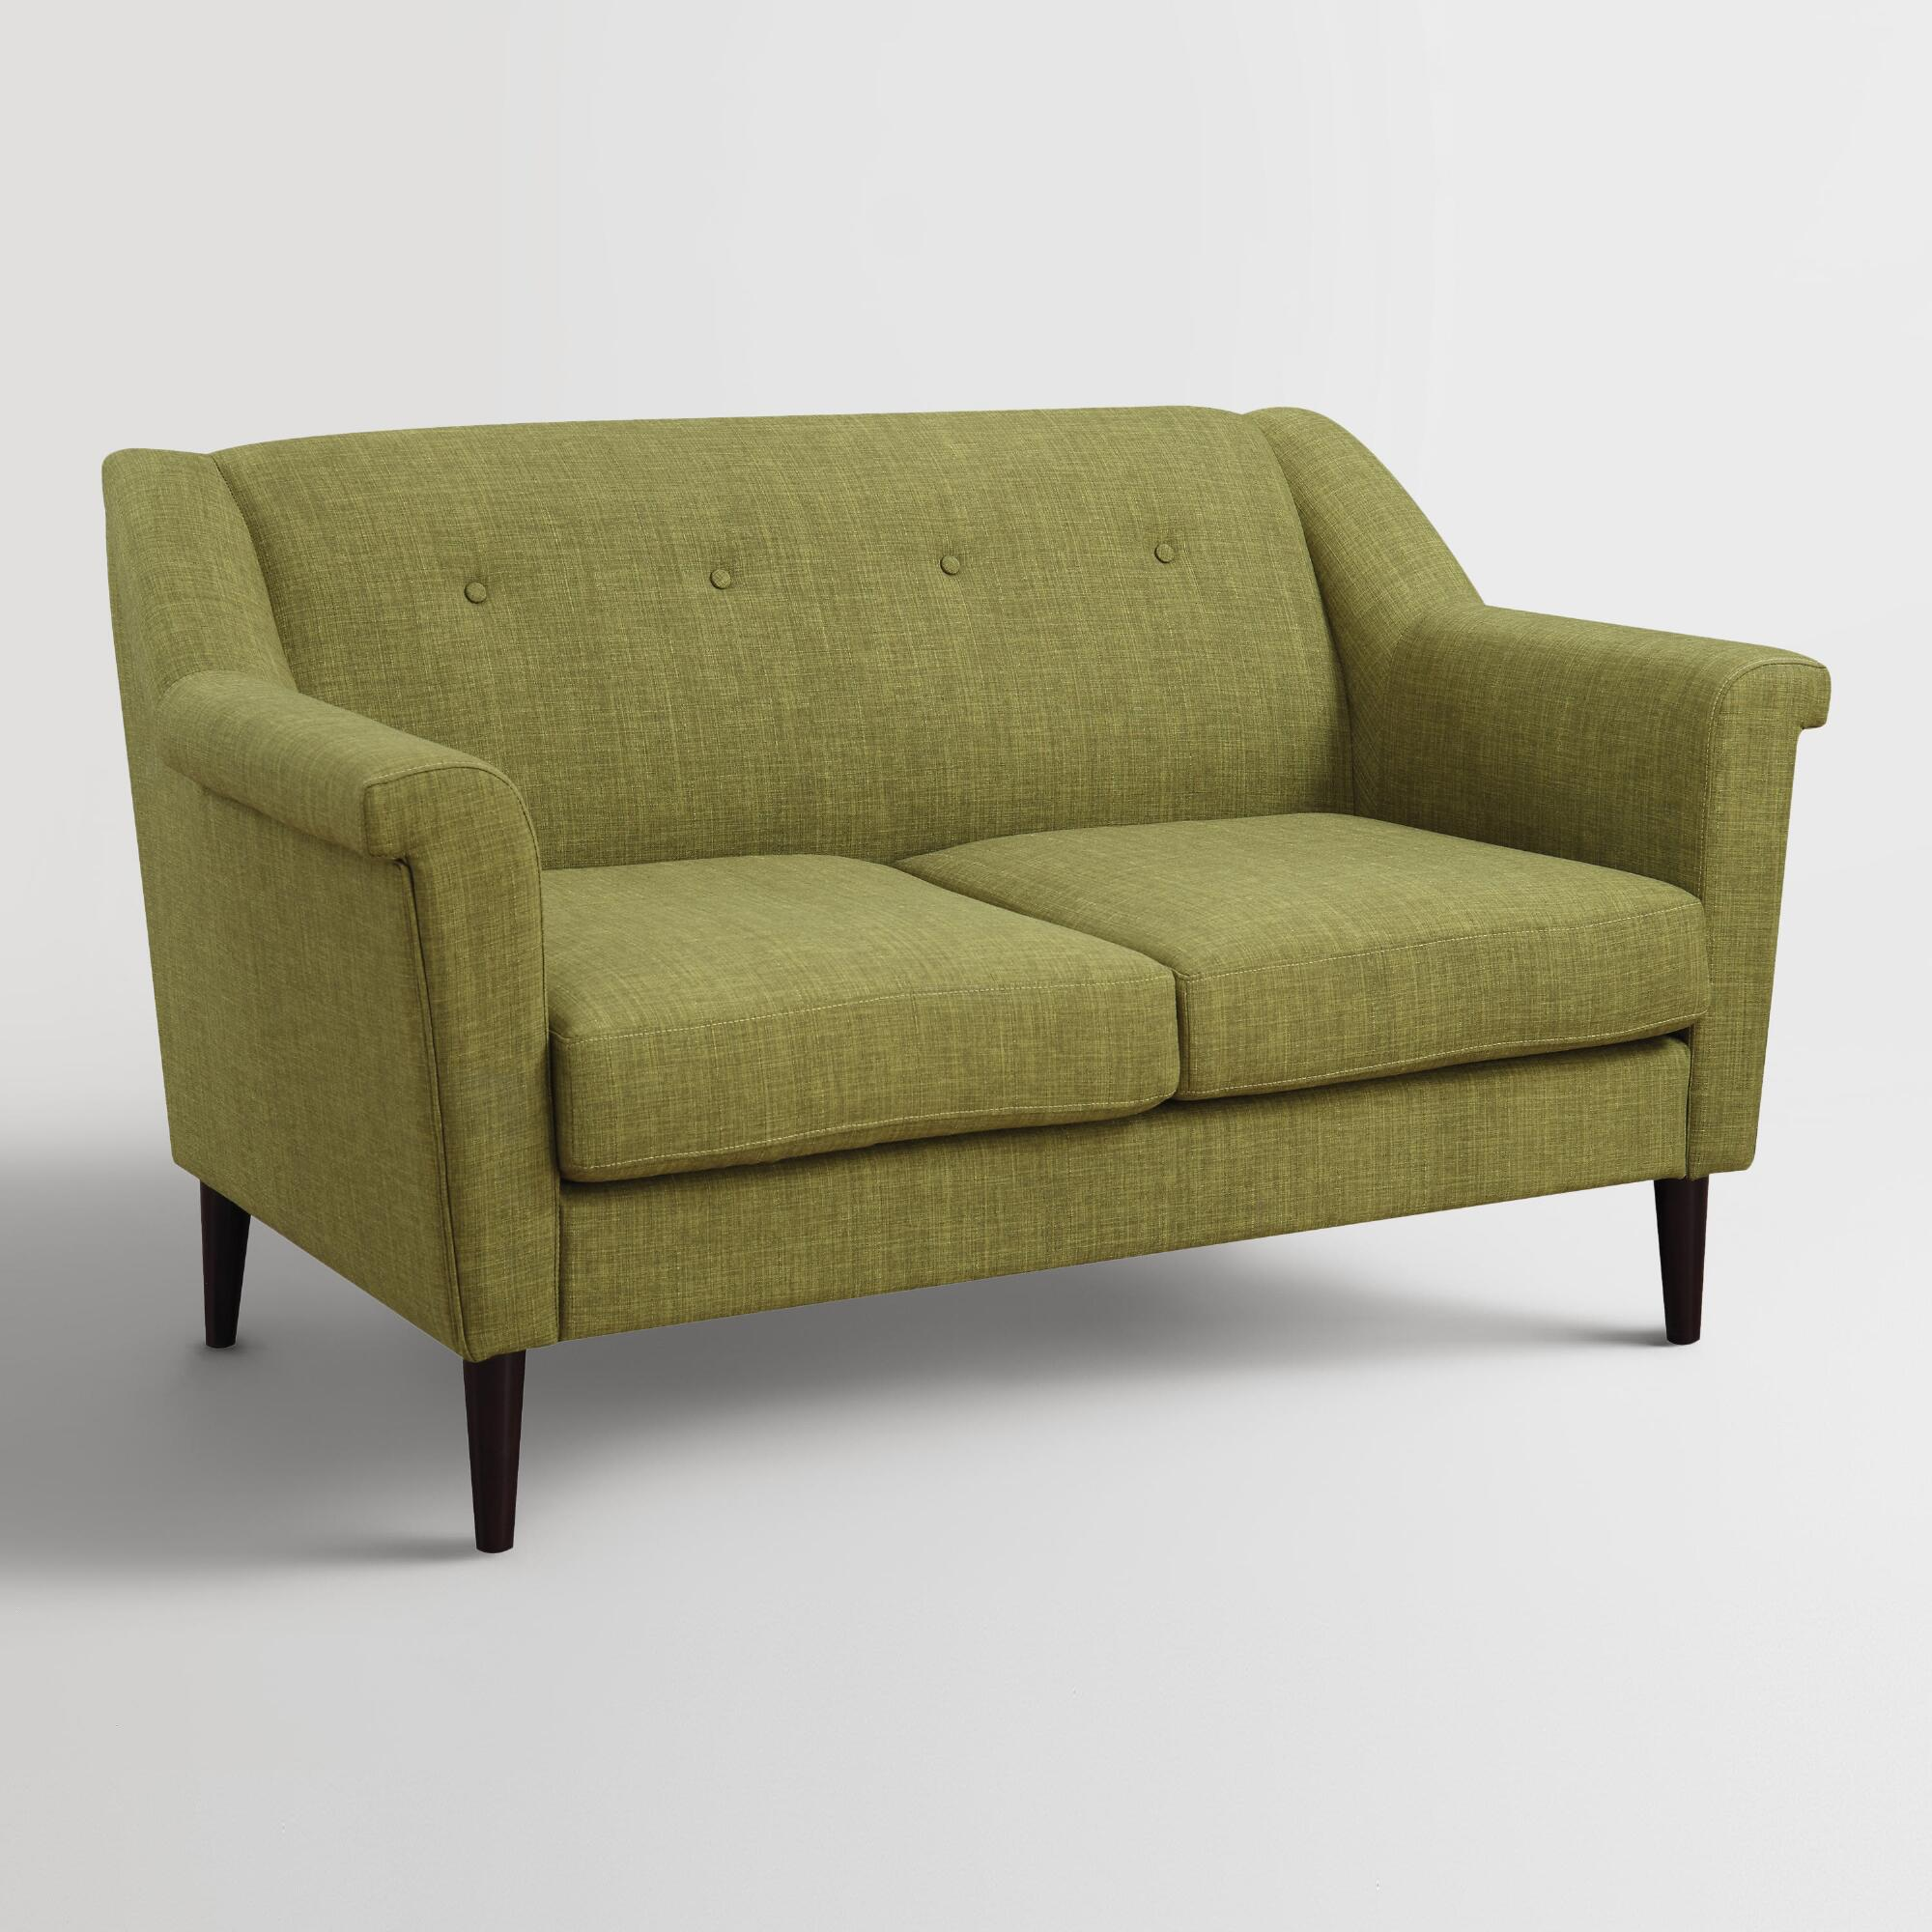 Buy green navarre upholstered loveseat by world market with discount and free delivery Upholstered sofas and loveseats